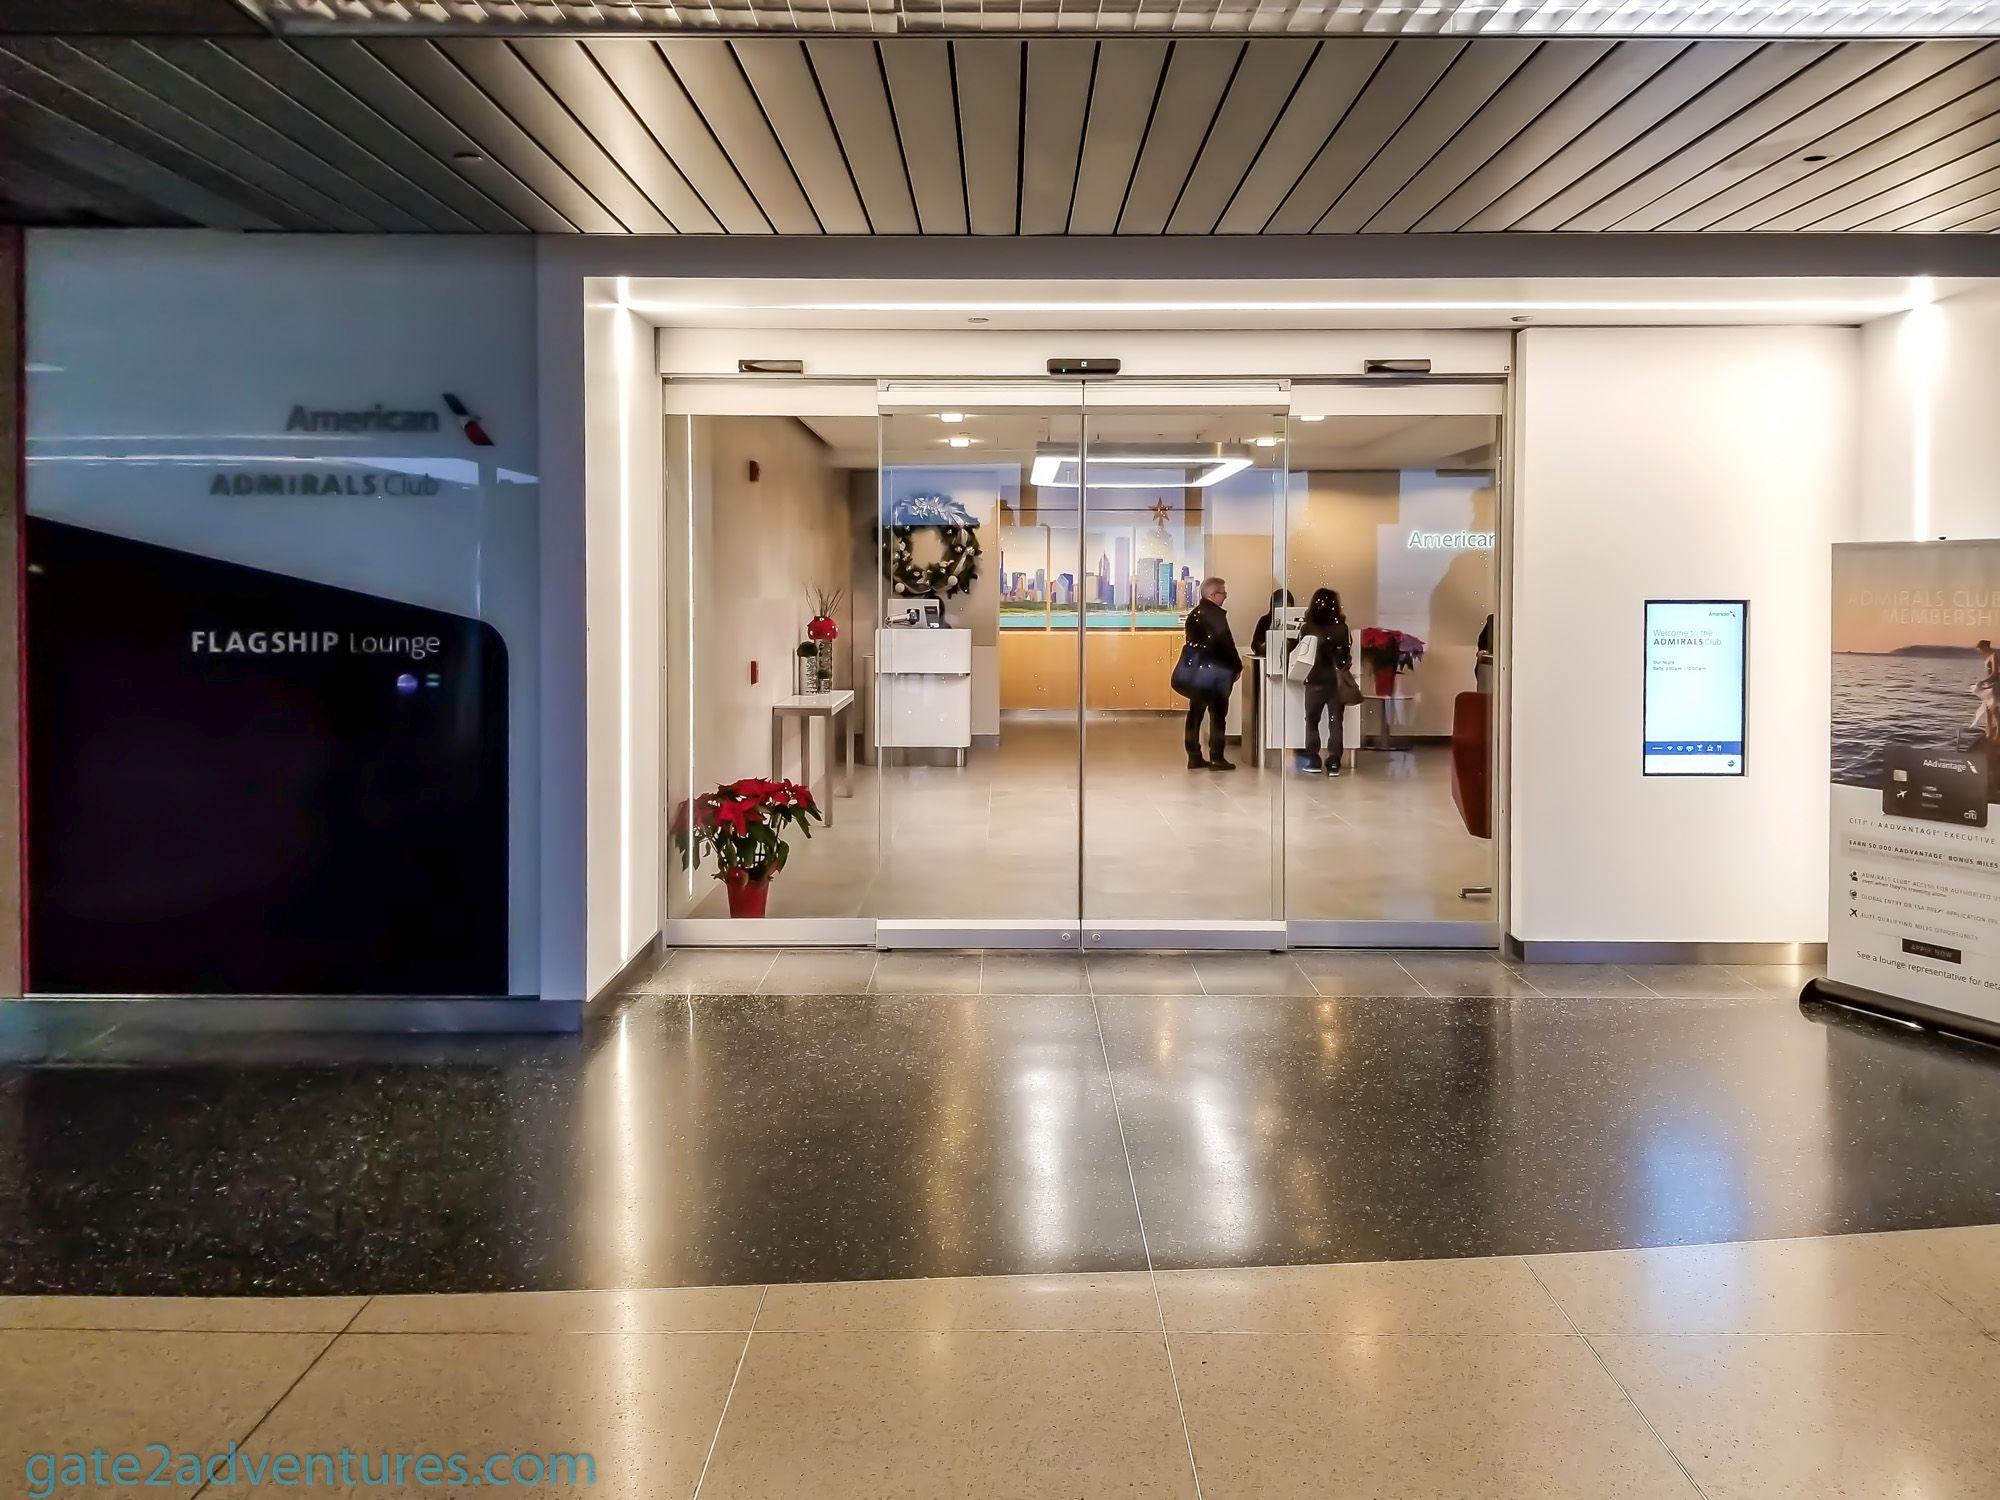 Lounge Review American Airlines Flagship Lounge Chicago O